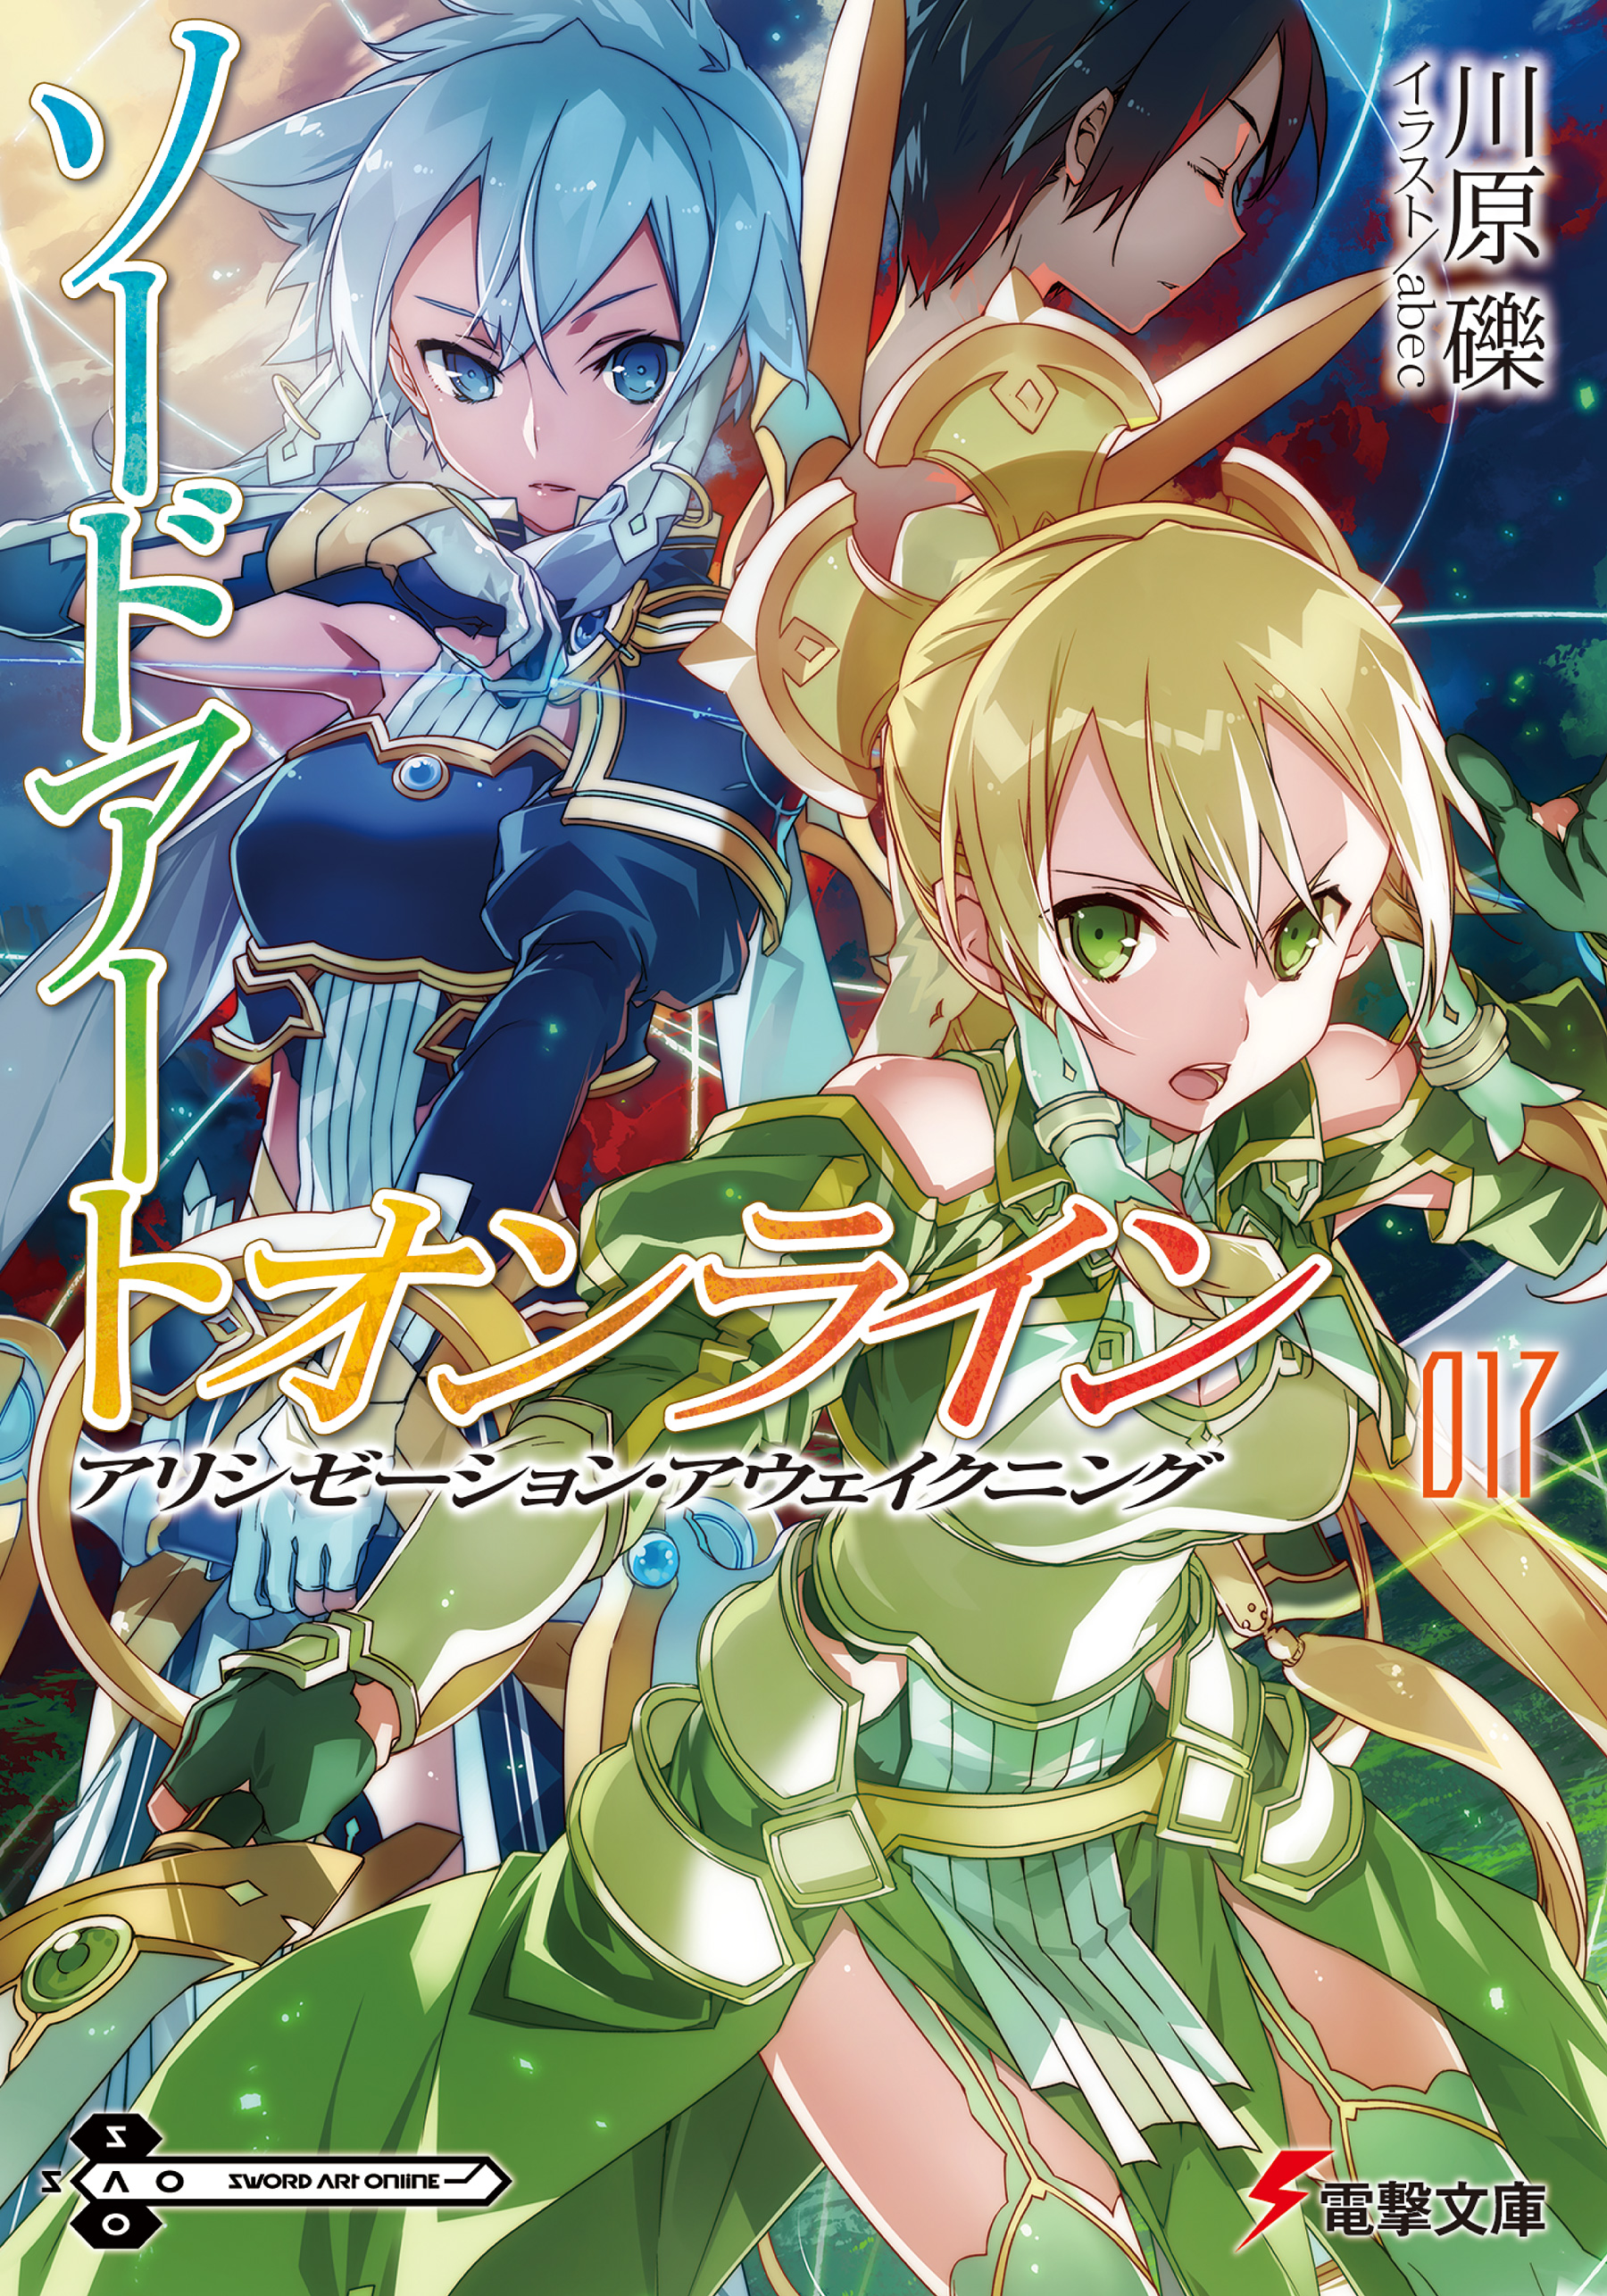 Sword Art Online Volume 17